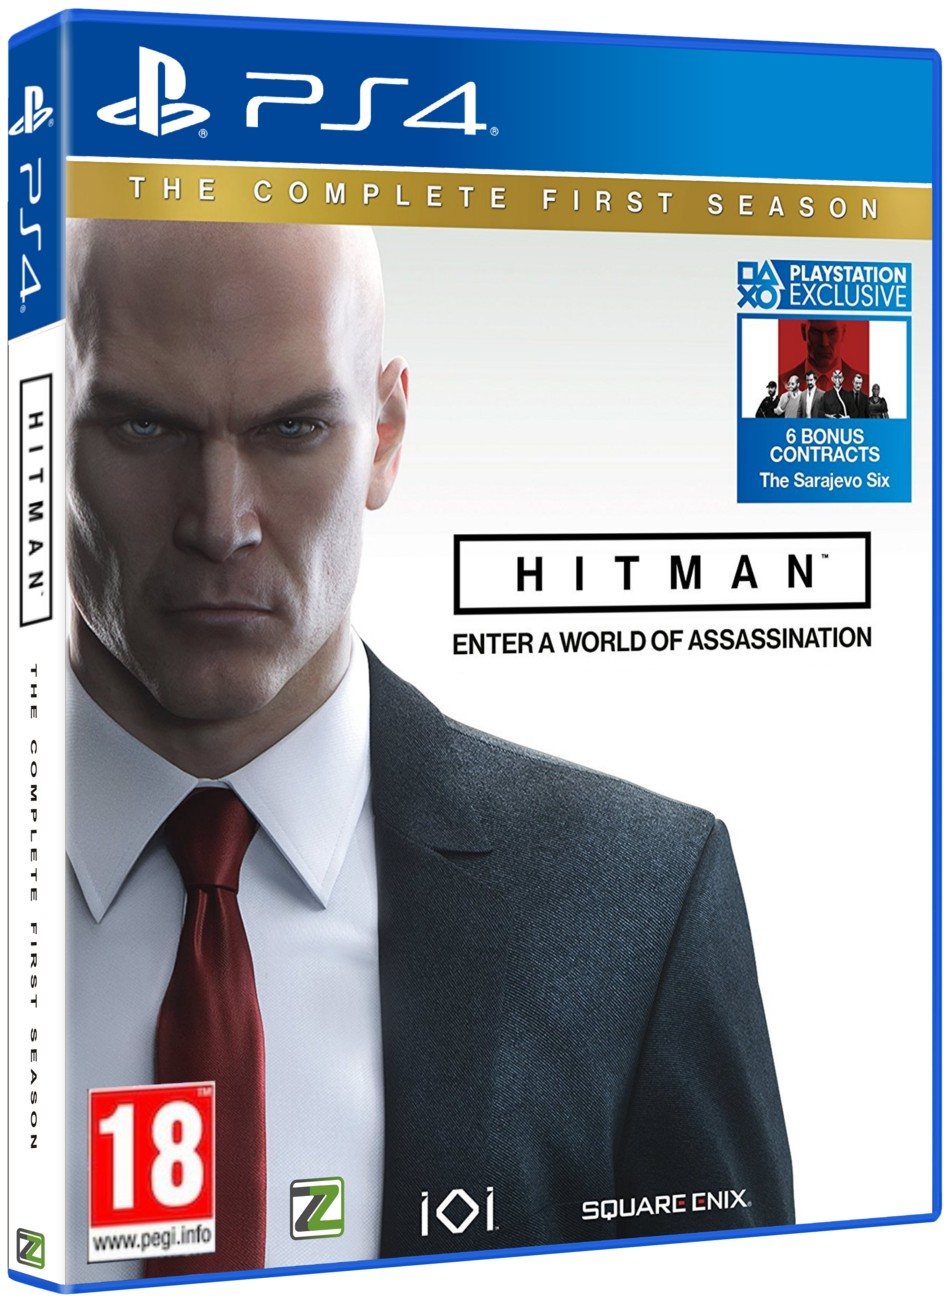 HITMAN THE COMPLETE FIRST SEASON STEELBOOK EDITION - PS4